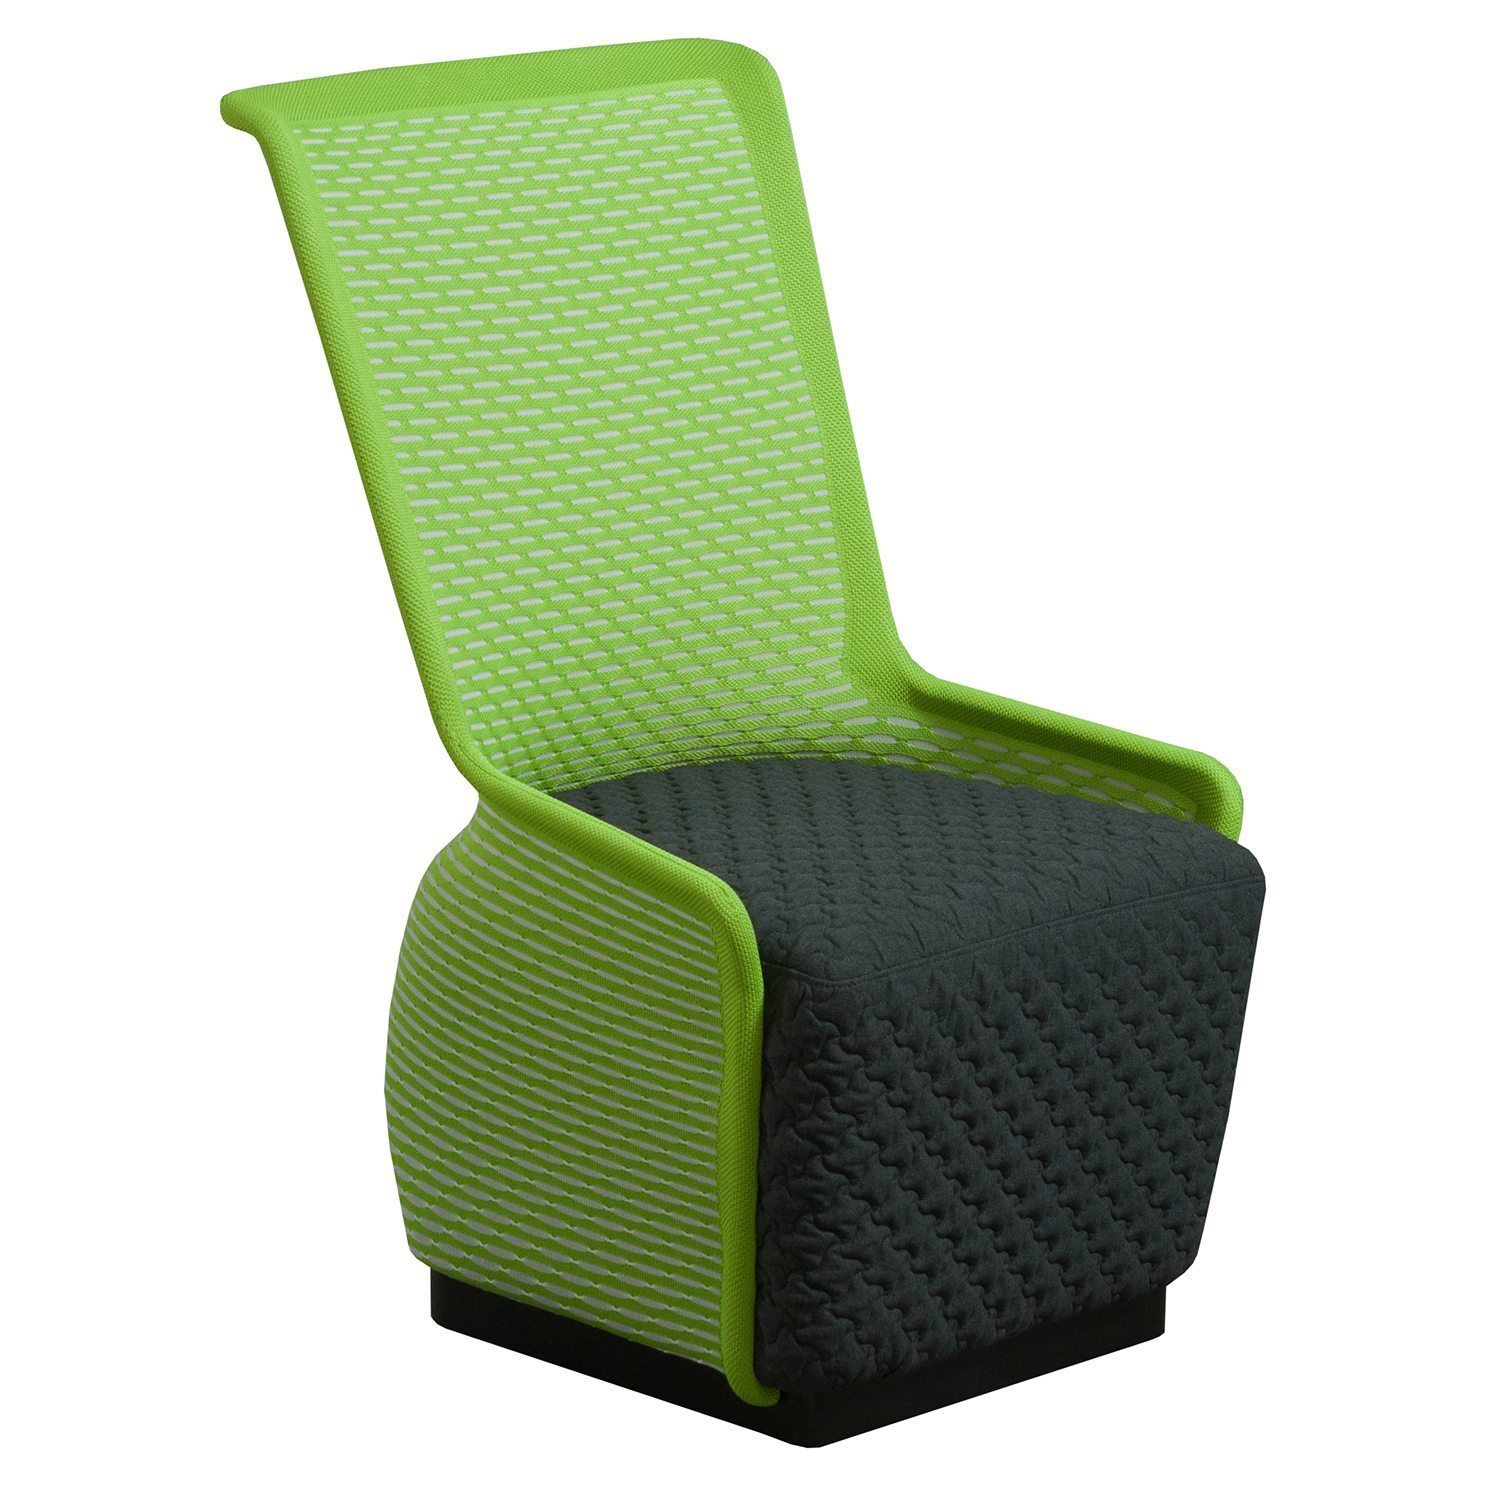 Mesh Lounge Chair Tide Pool By Gosit Modern Mesh Lounge Chair Green And Gray